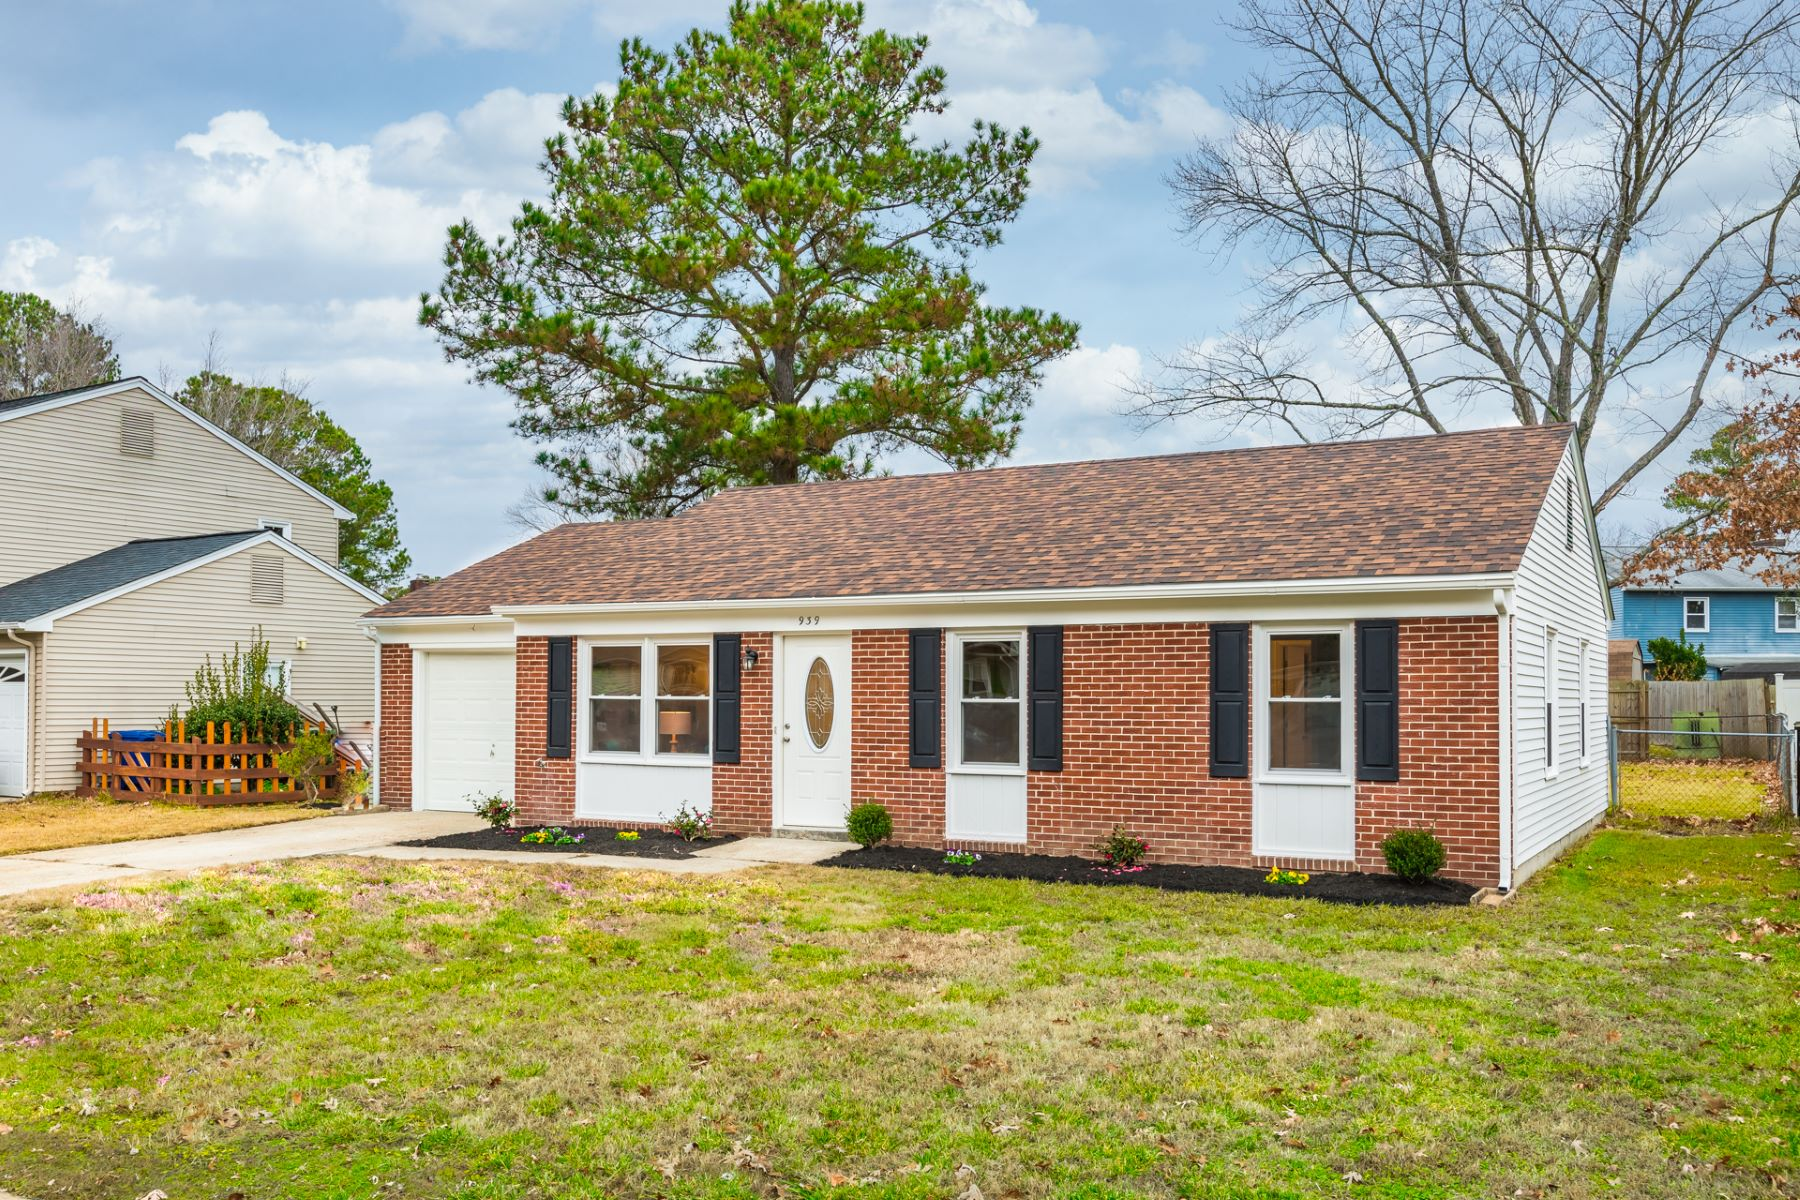 Single Family Homes for Active at GREEN ACRES 939 Red Oak Circle Newport News, Virginia 23608 United States